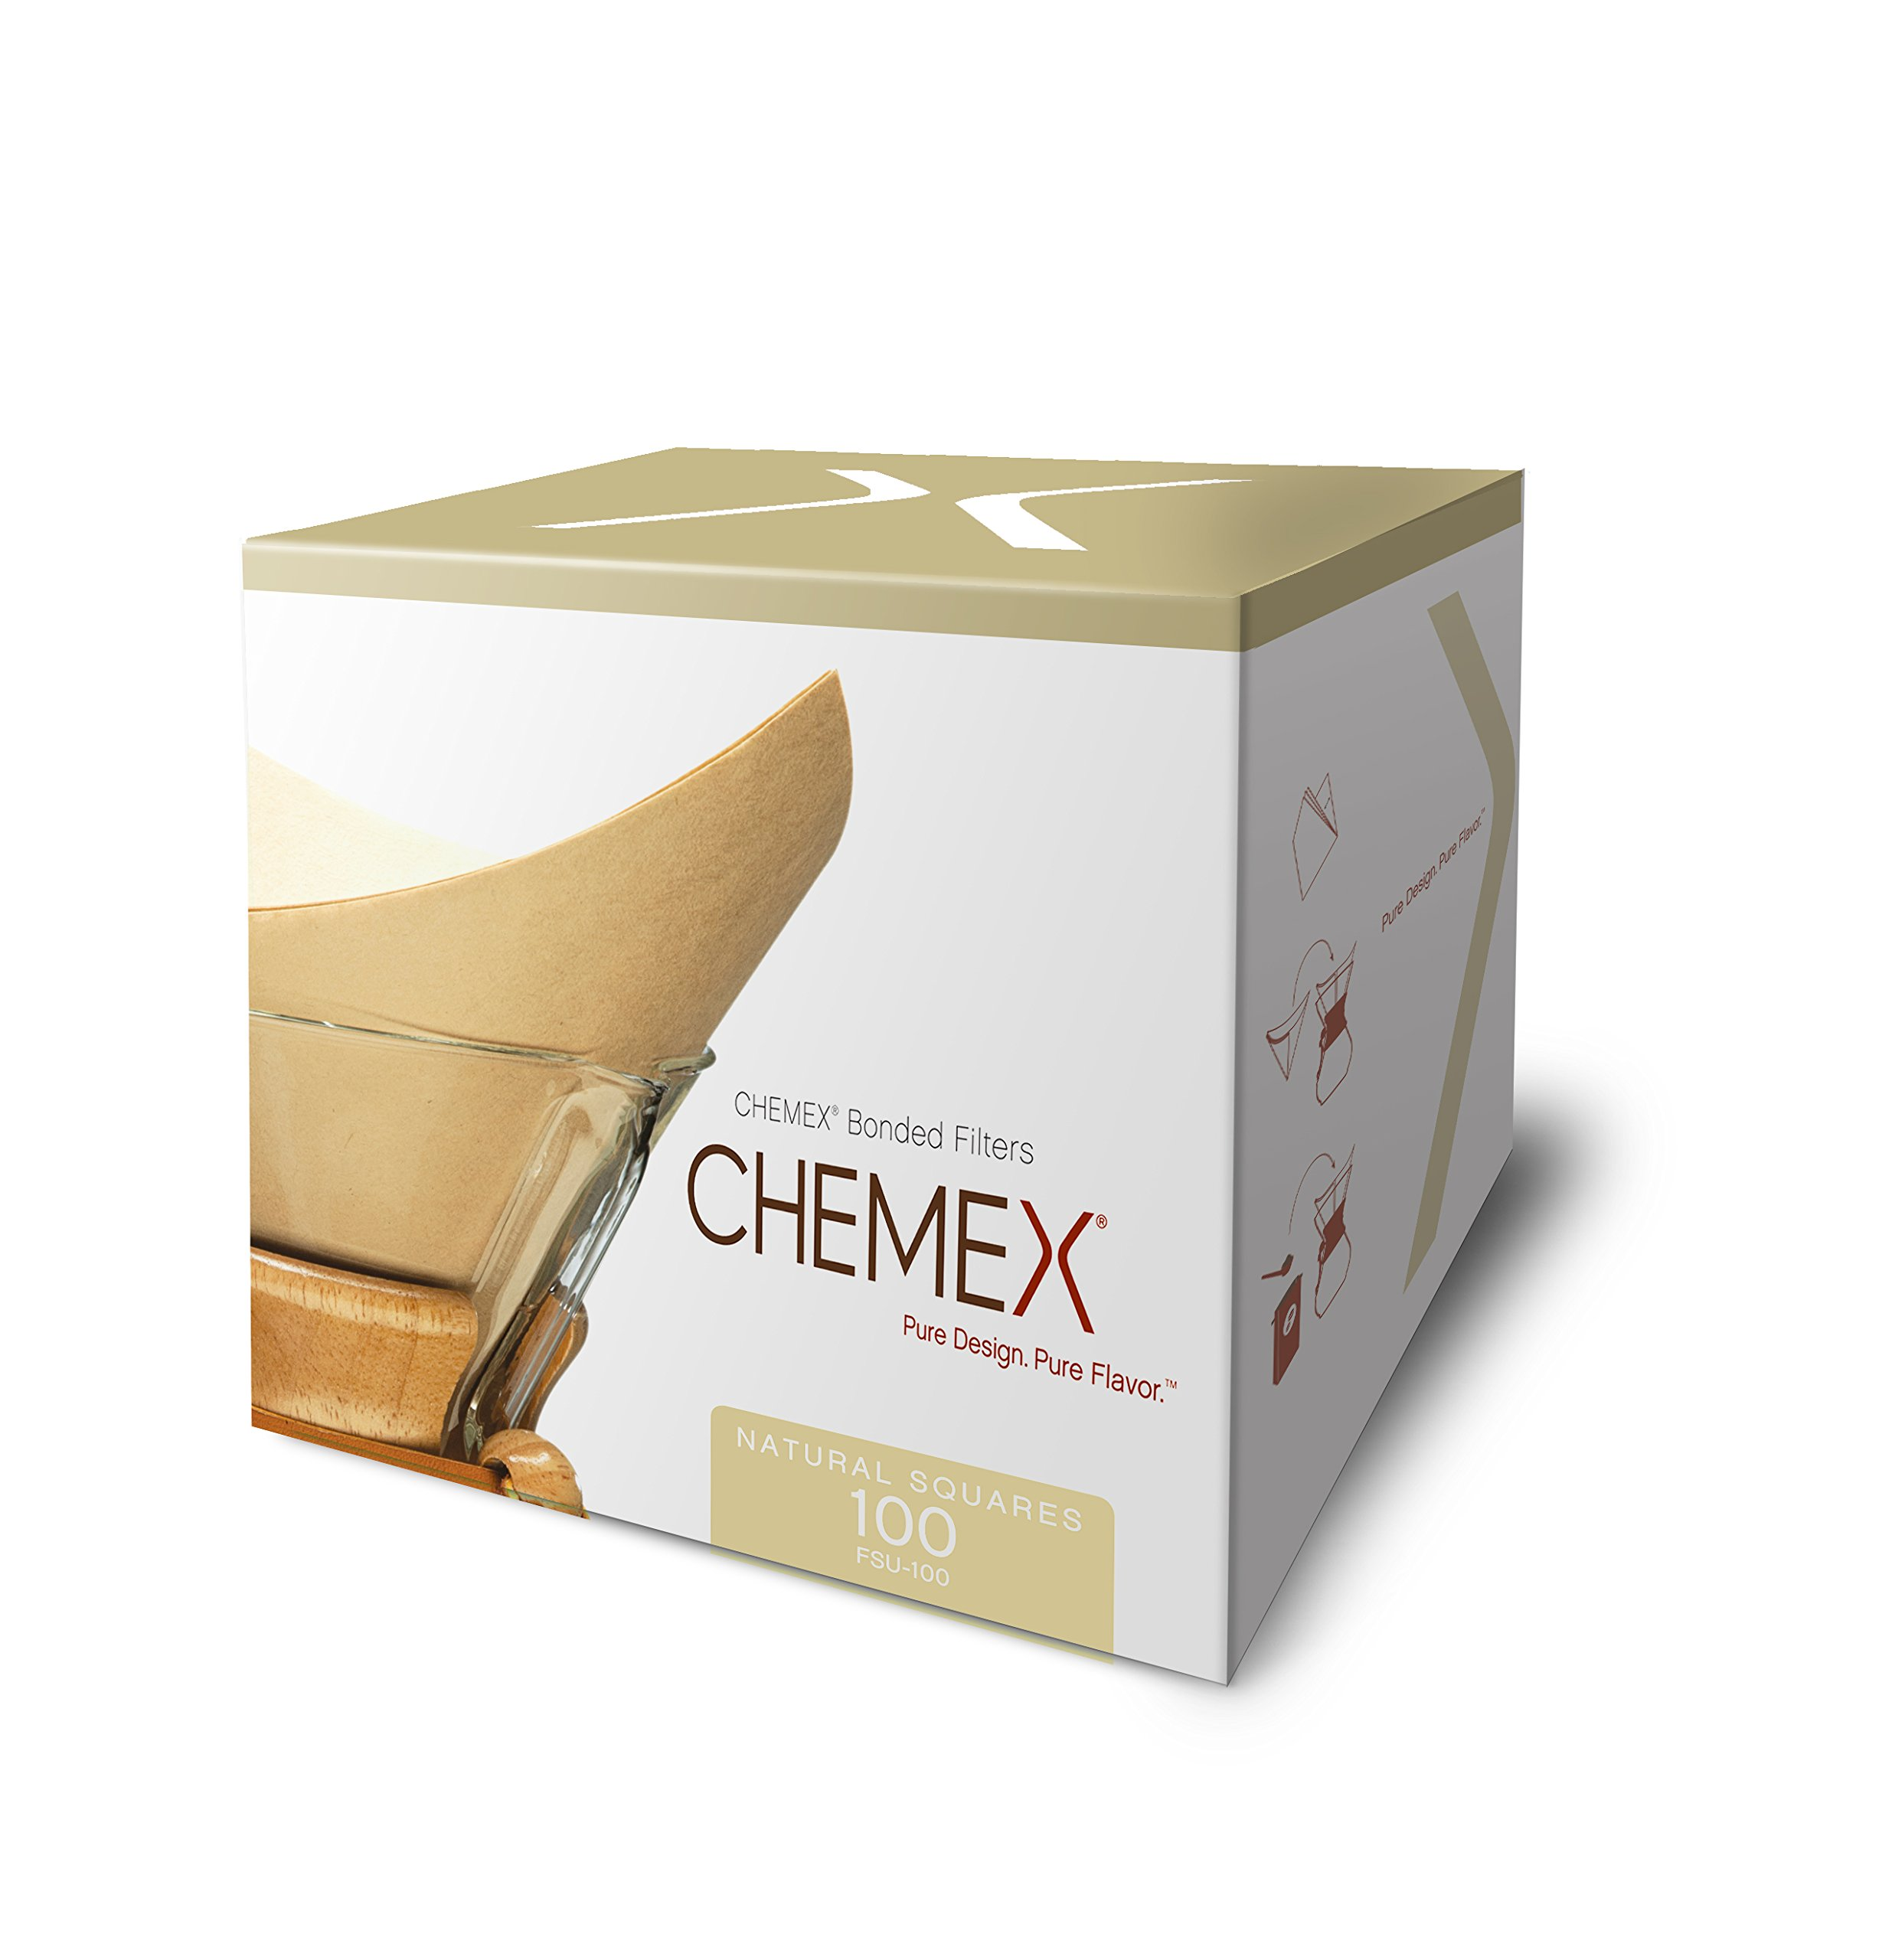 Chemex Natural Coffee Filters, Square, 100ct - Exclusive Packaging by Chemex